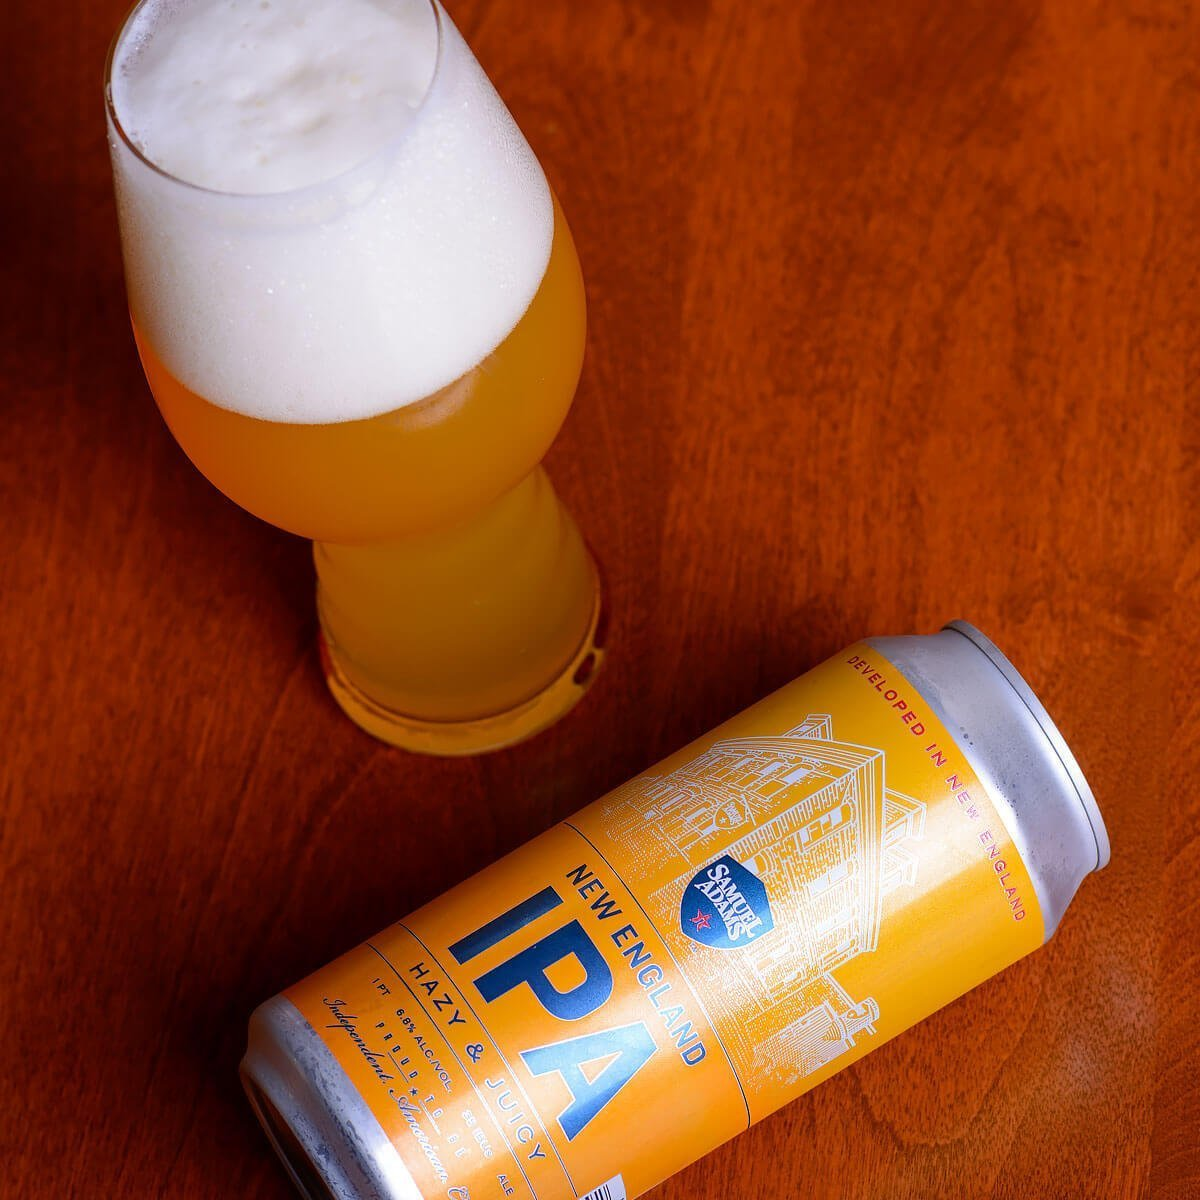 Samuel Adams New England IPA is an American IPA by the Boston Beer Company that blends hoppy citrus and pine with tropical fruit and doughy bread. Read the craft beer review.